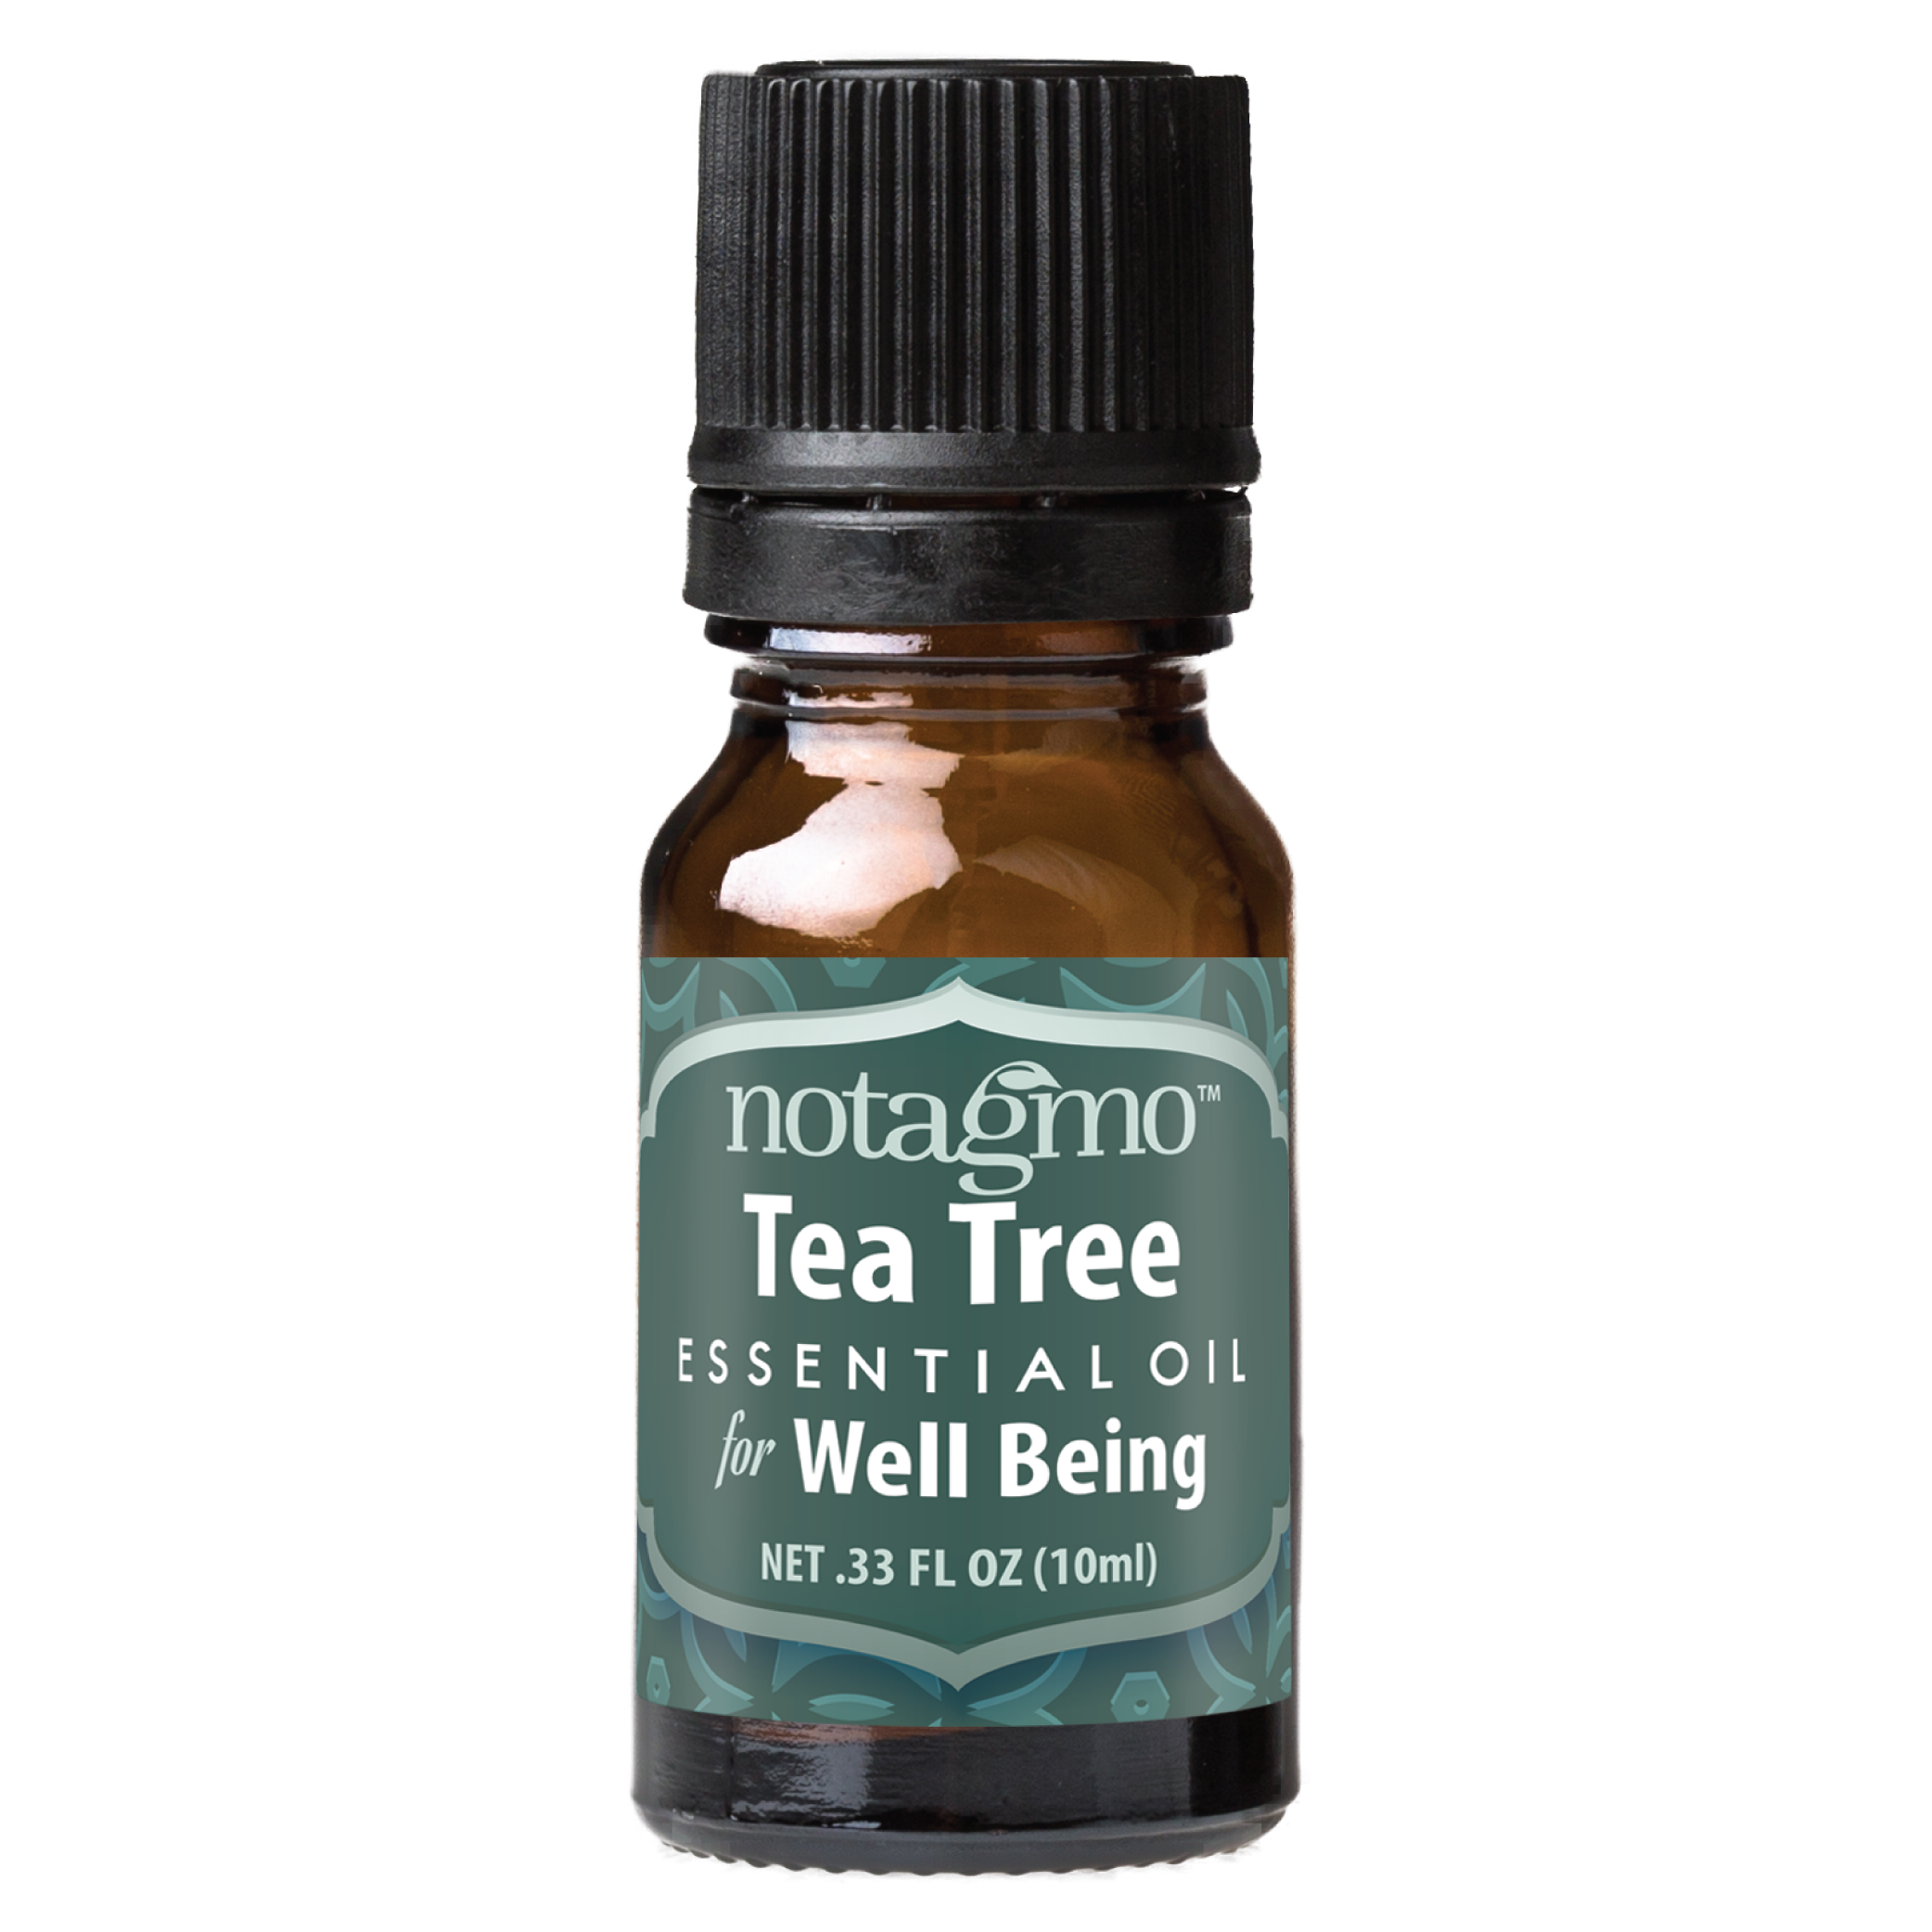 Tea Tree Essential Oil 10ml: Well Being